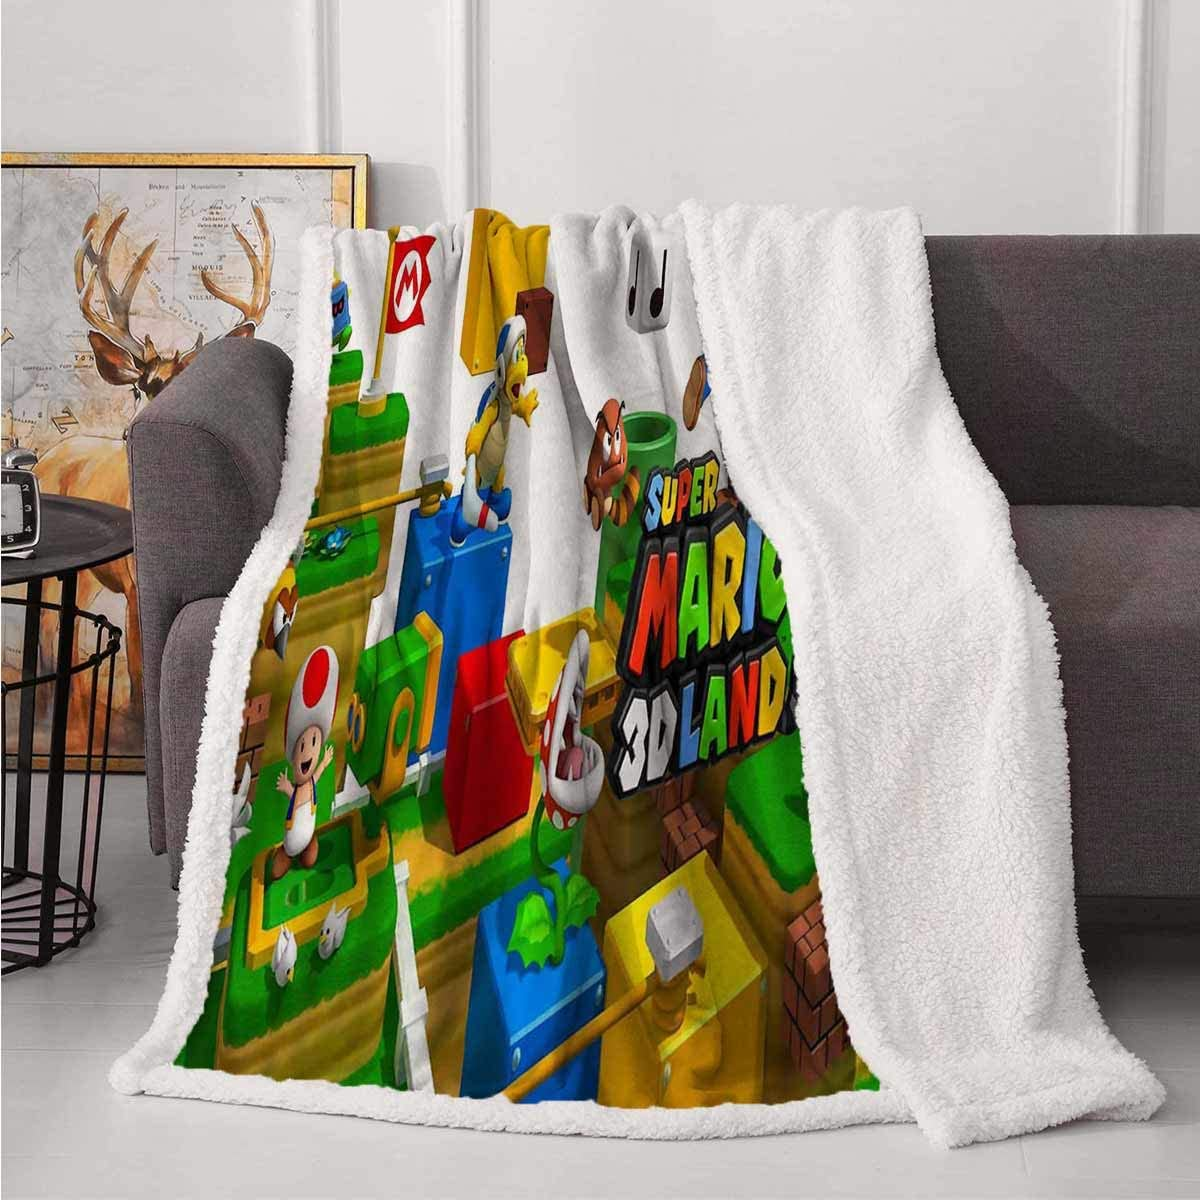 SOSO-LALEO Flannel Fleece Luxury Blanket for Boys, Girls, Kids, Toddler Super Mario Game 3D World Cartoon Background Reversible Plush Bed Blankets for Couch Sofa Bed Traveling 40x50 in